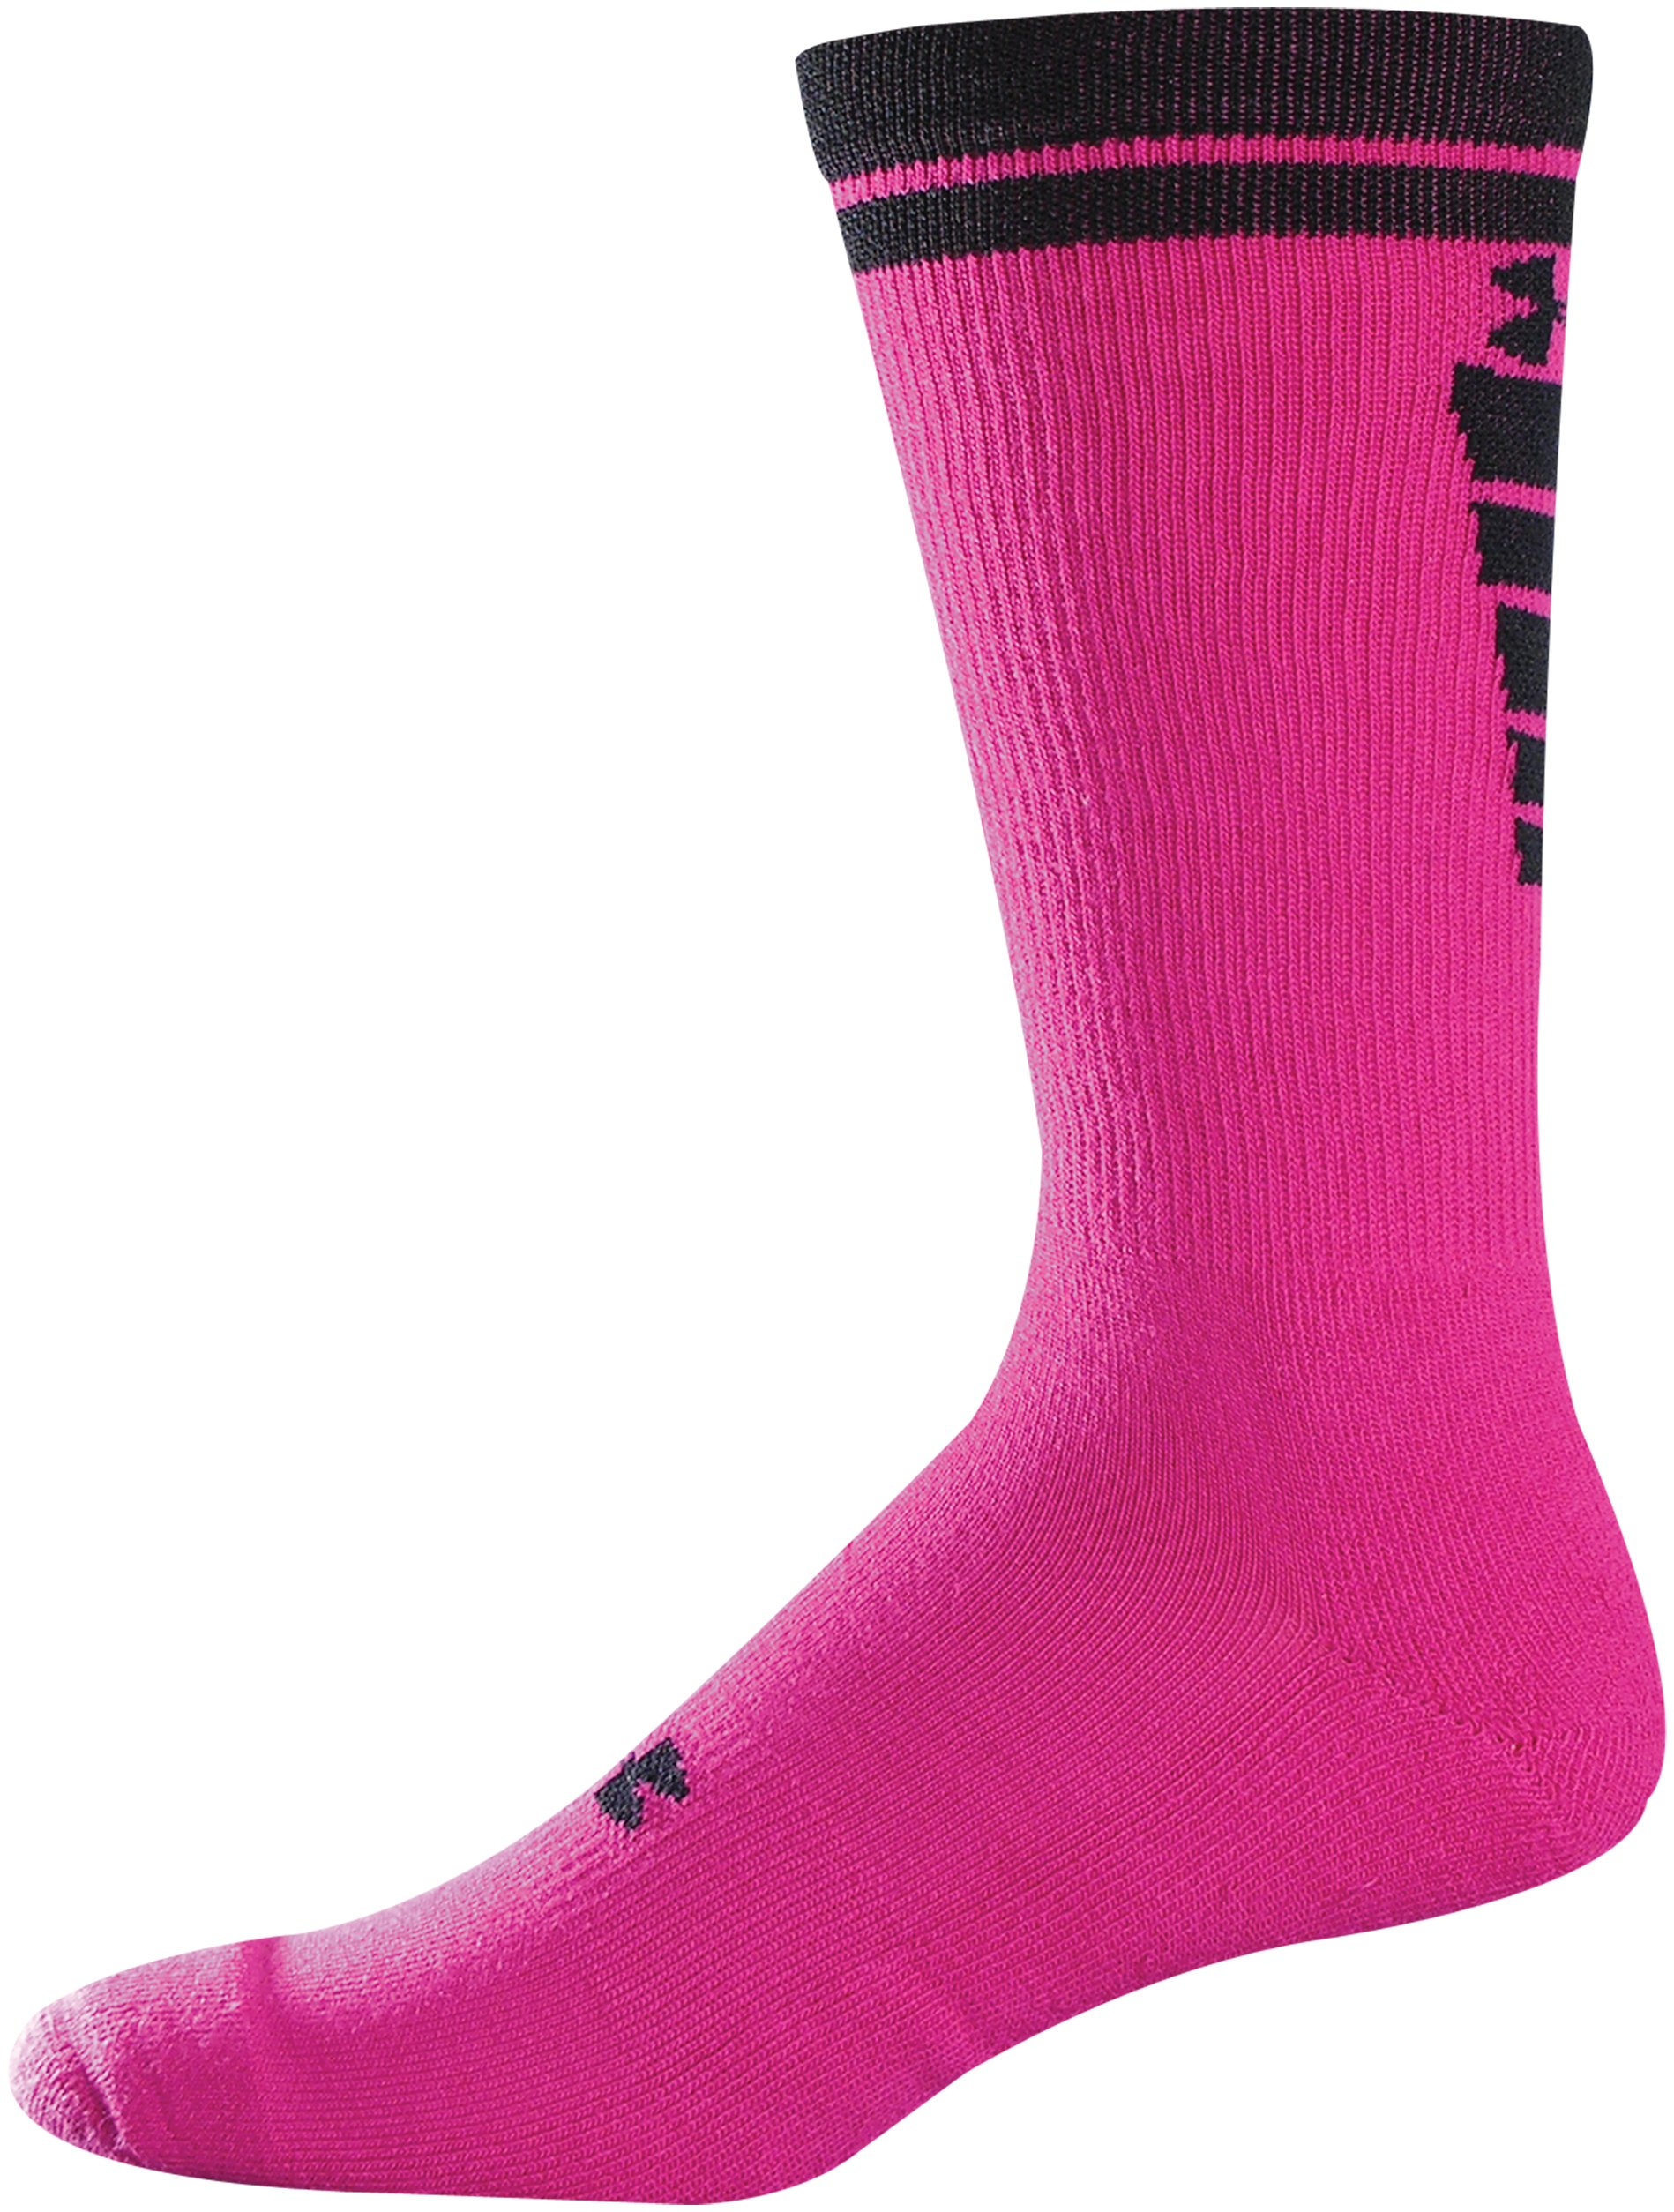 Men's UA Zagger Crew Socks, Tropic Pink